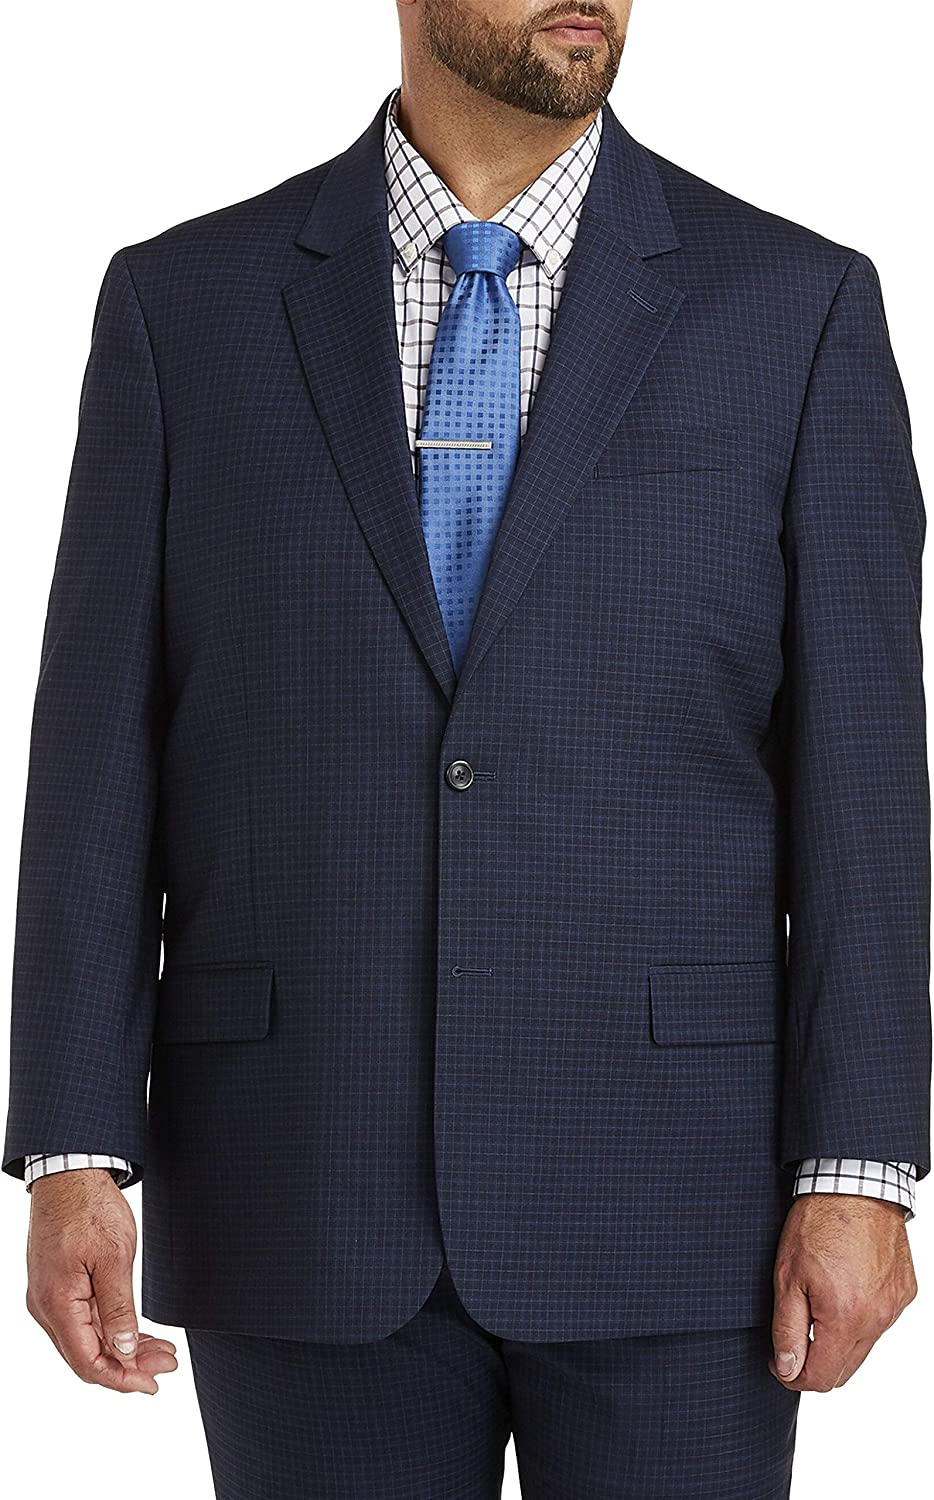 DXL Gold Series Big and Tall Easy Stretch Grid Suit Jacket, Navy